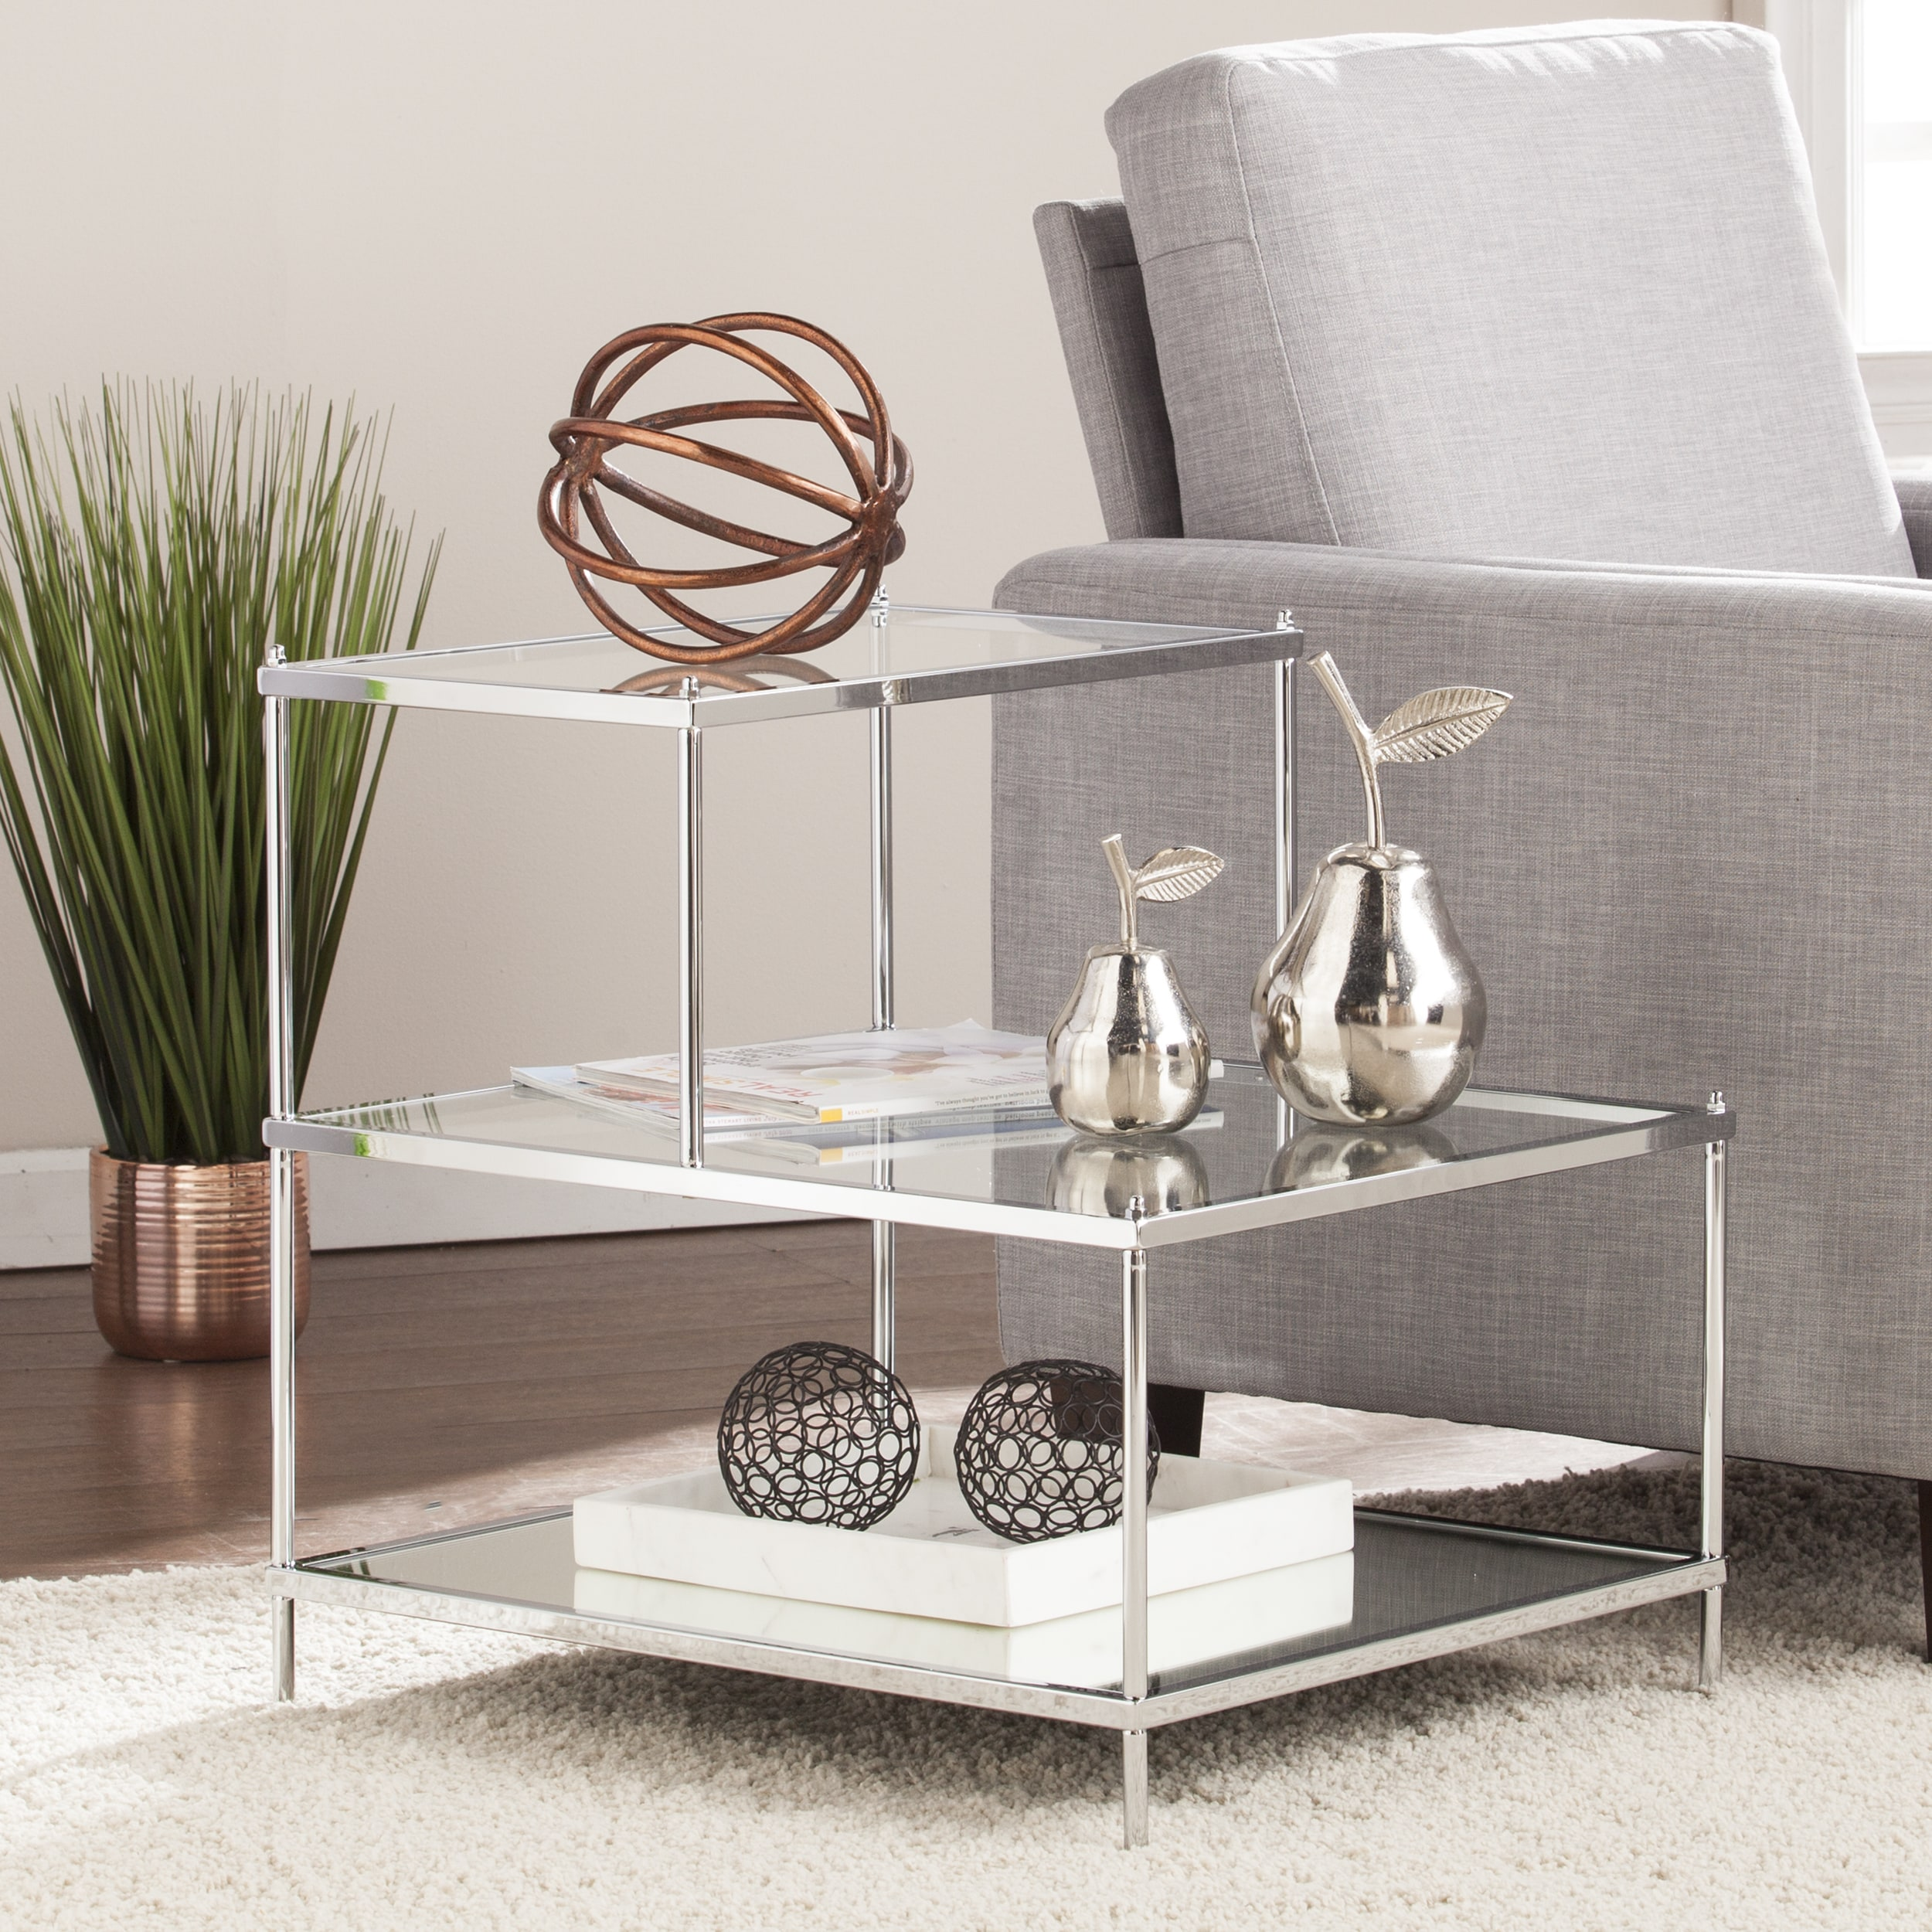 silver orchid olivia glam mirrored accent table chrome small bunnings outdoor black aluminum coffee wisteria tiffany style lamps target threshold round plants tablette fast high